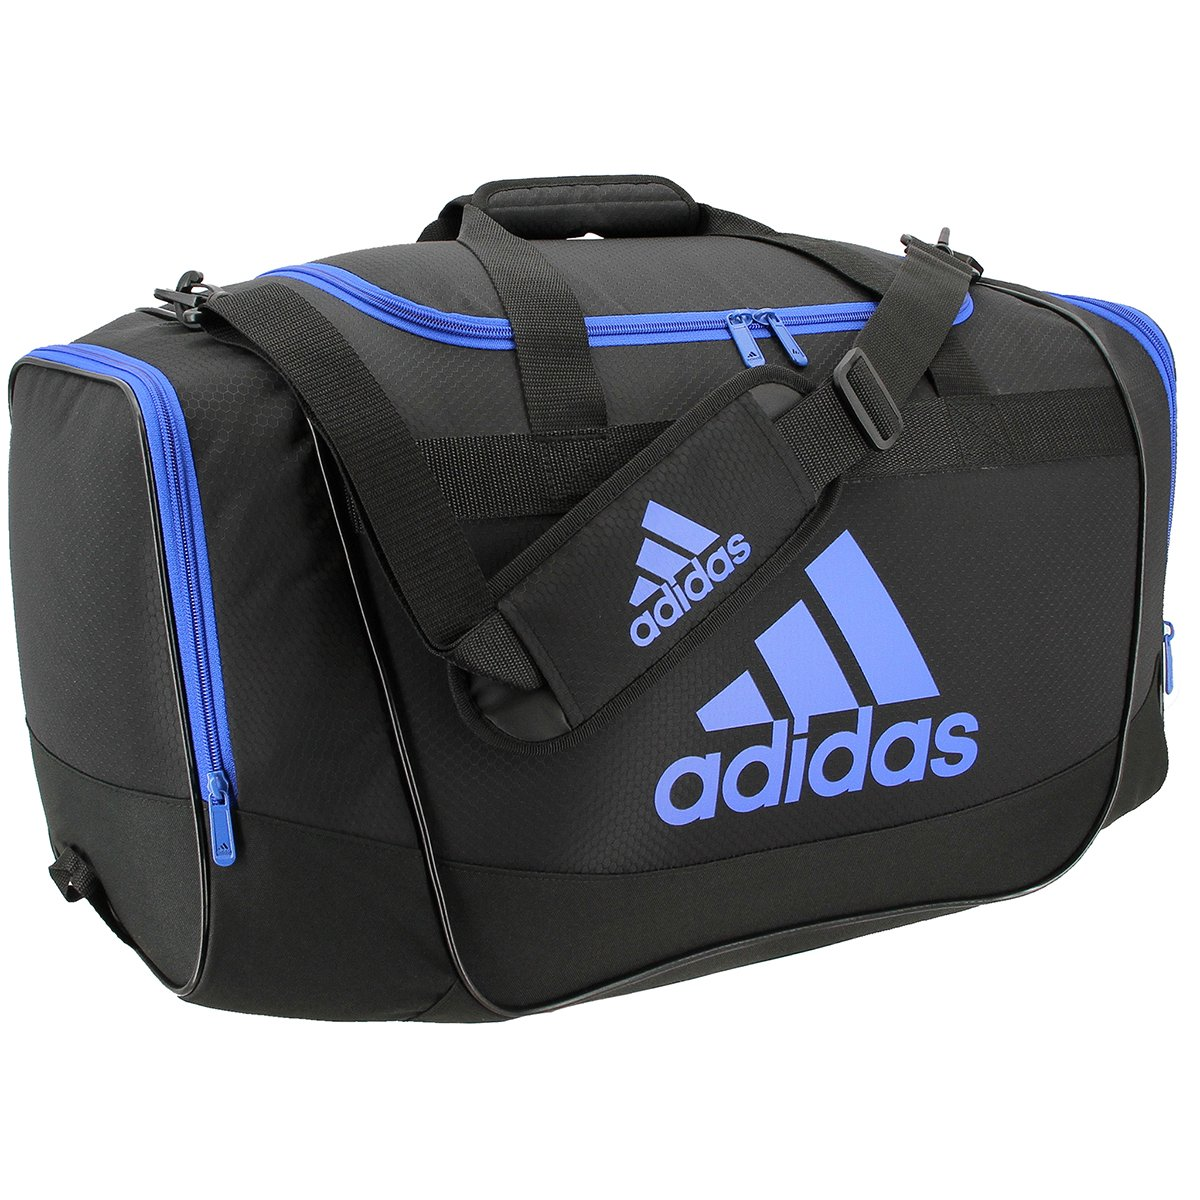 efb6e64e4 Adidas Defender II Medium Duffel Bag, Medium, Black/Blue: Amazon.com.mx:  Deportes y Aire Libre